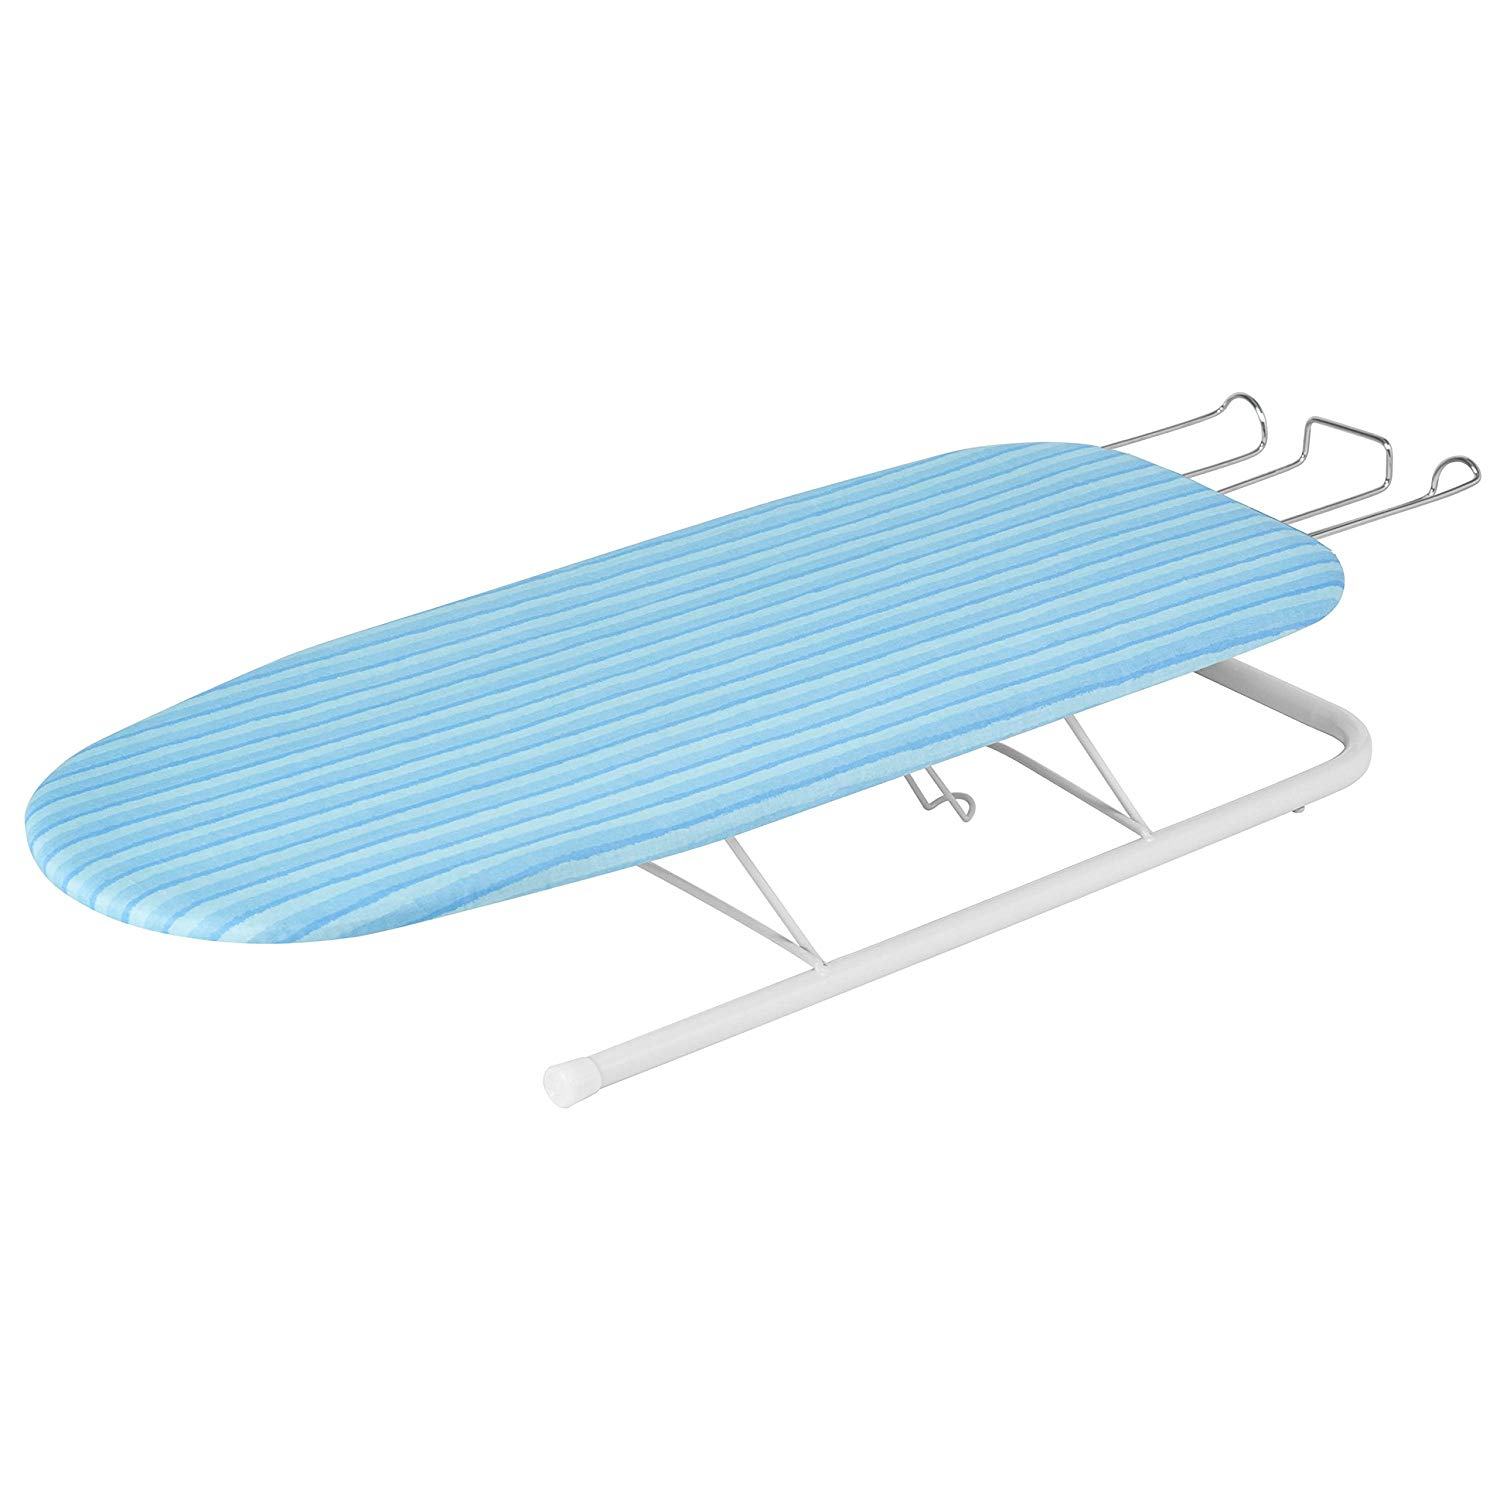 Ironing Board With Retractable Iron Rest